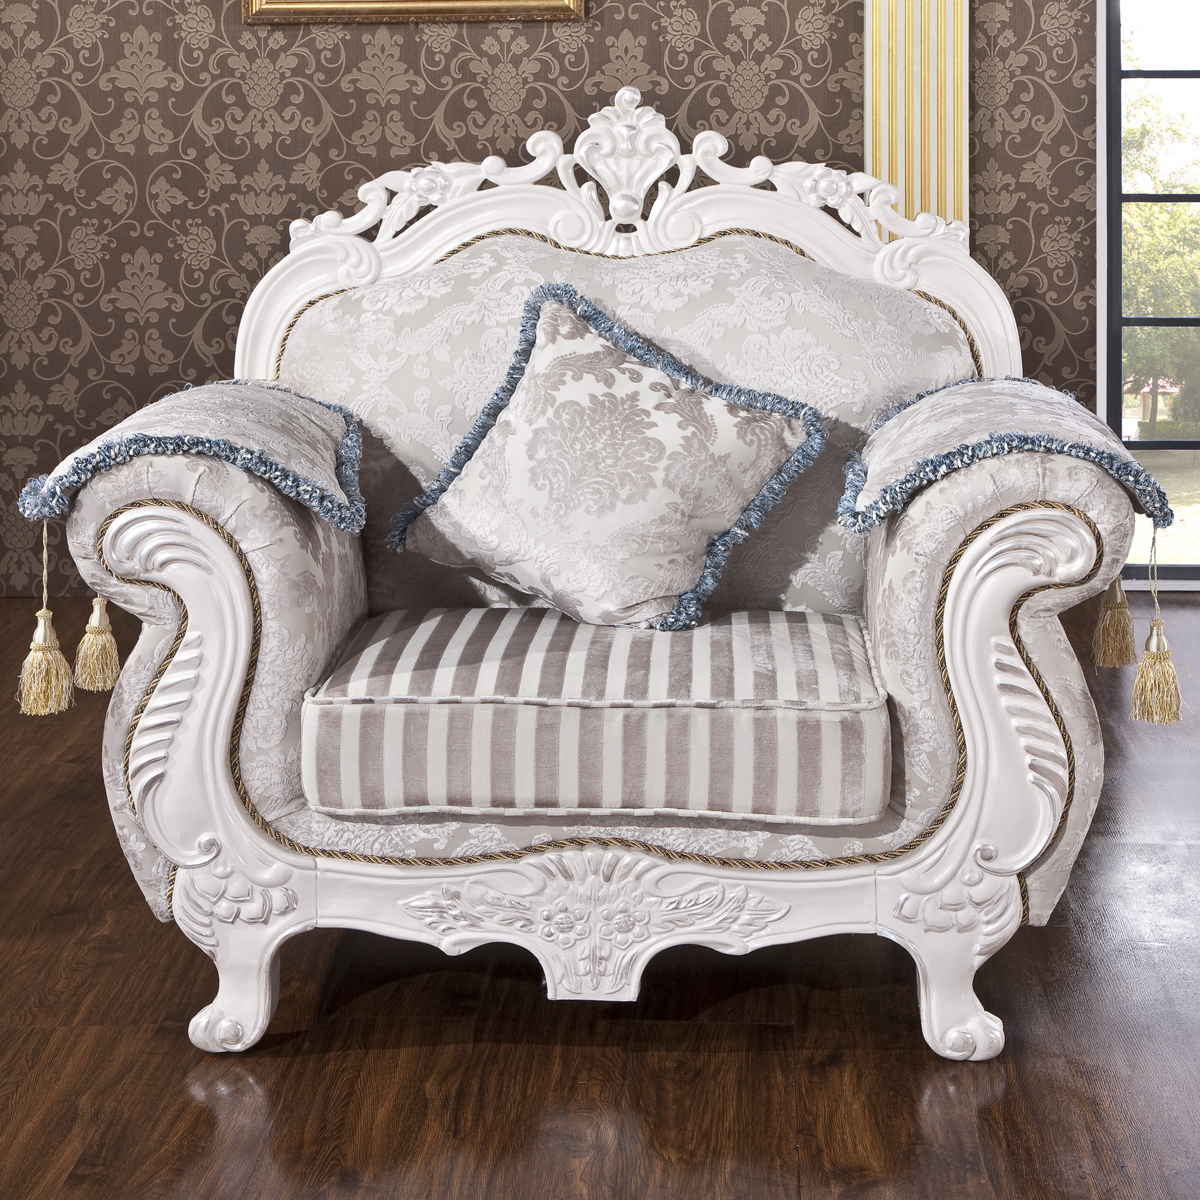 Thousands of united states nest home european neoclassical carved wood sofa fabric sofa minimalist small apartment living room combination